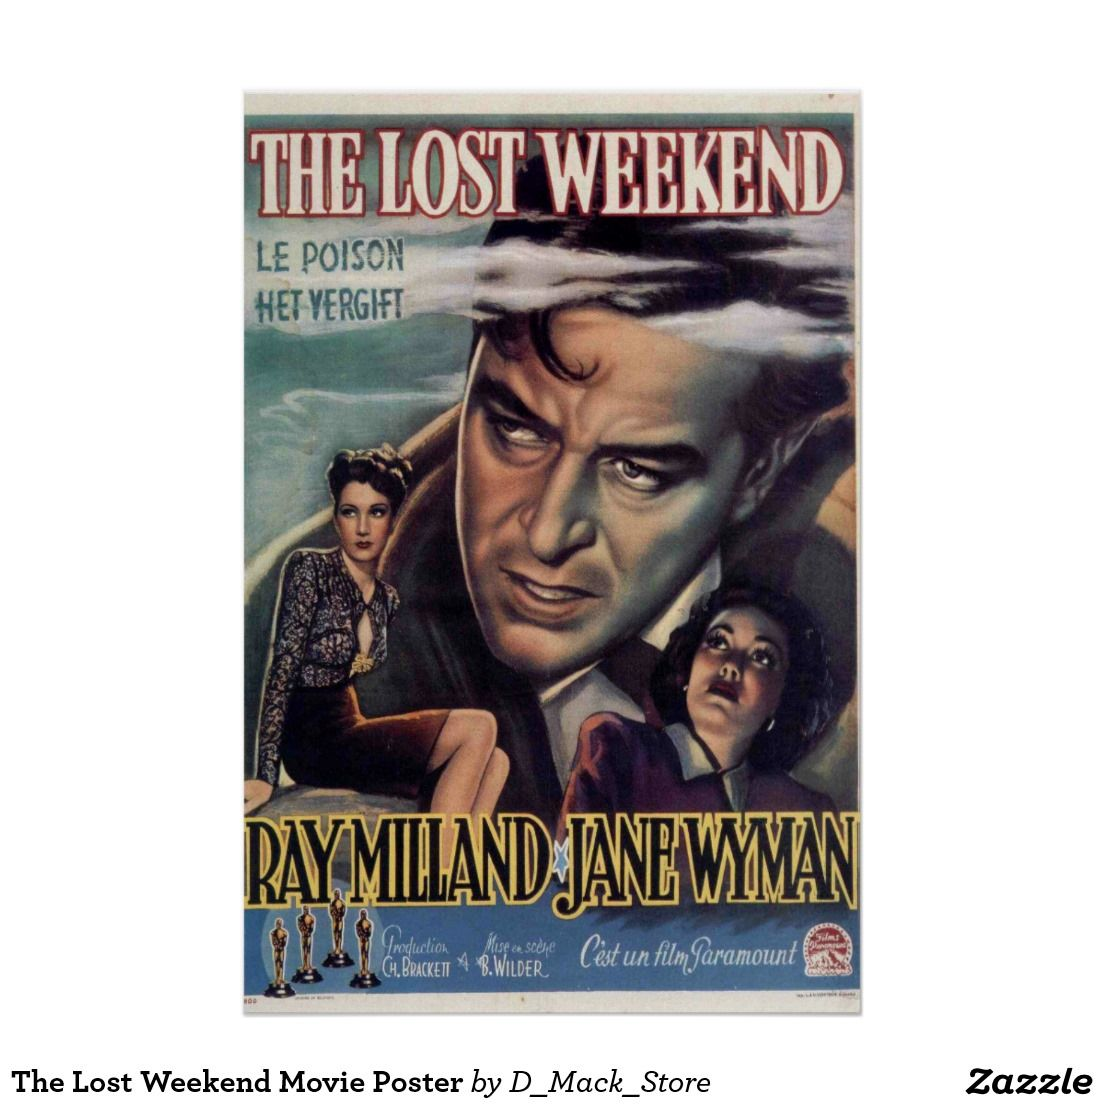 The Lost Weekend Movie Poster